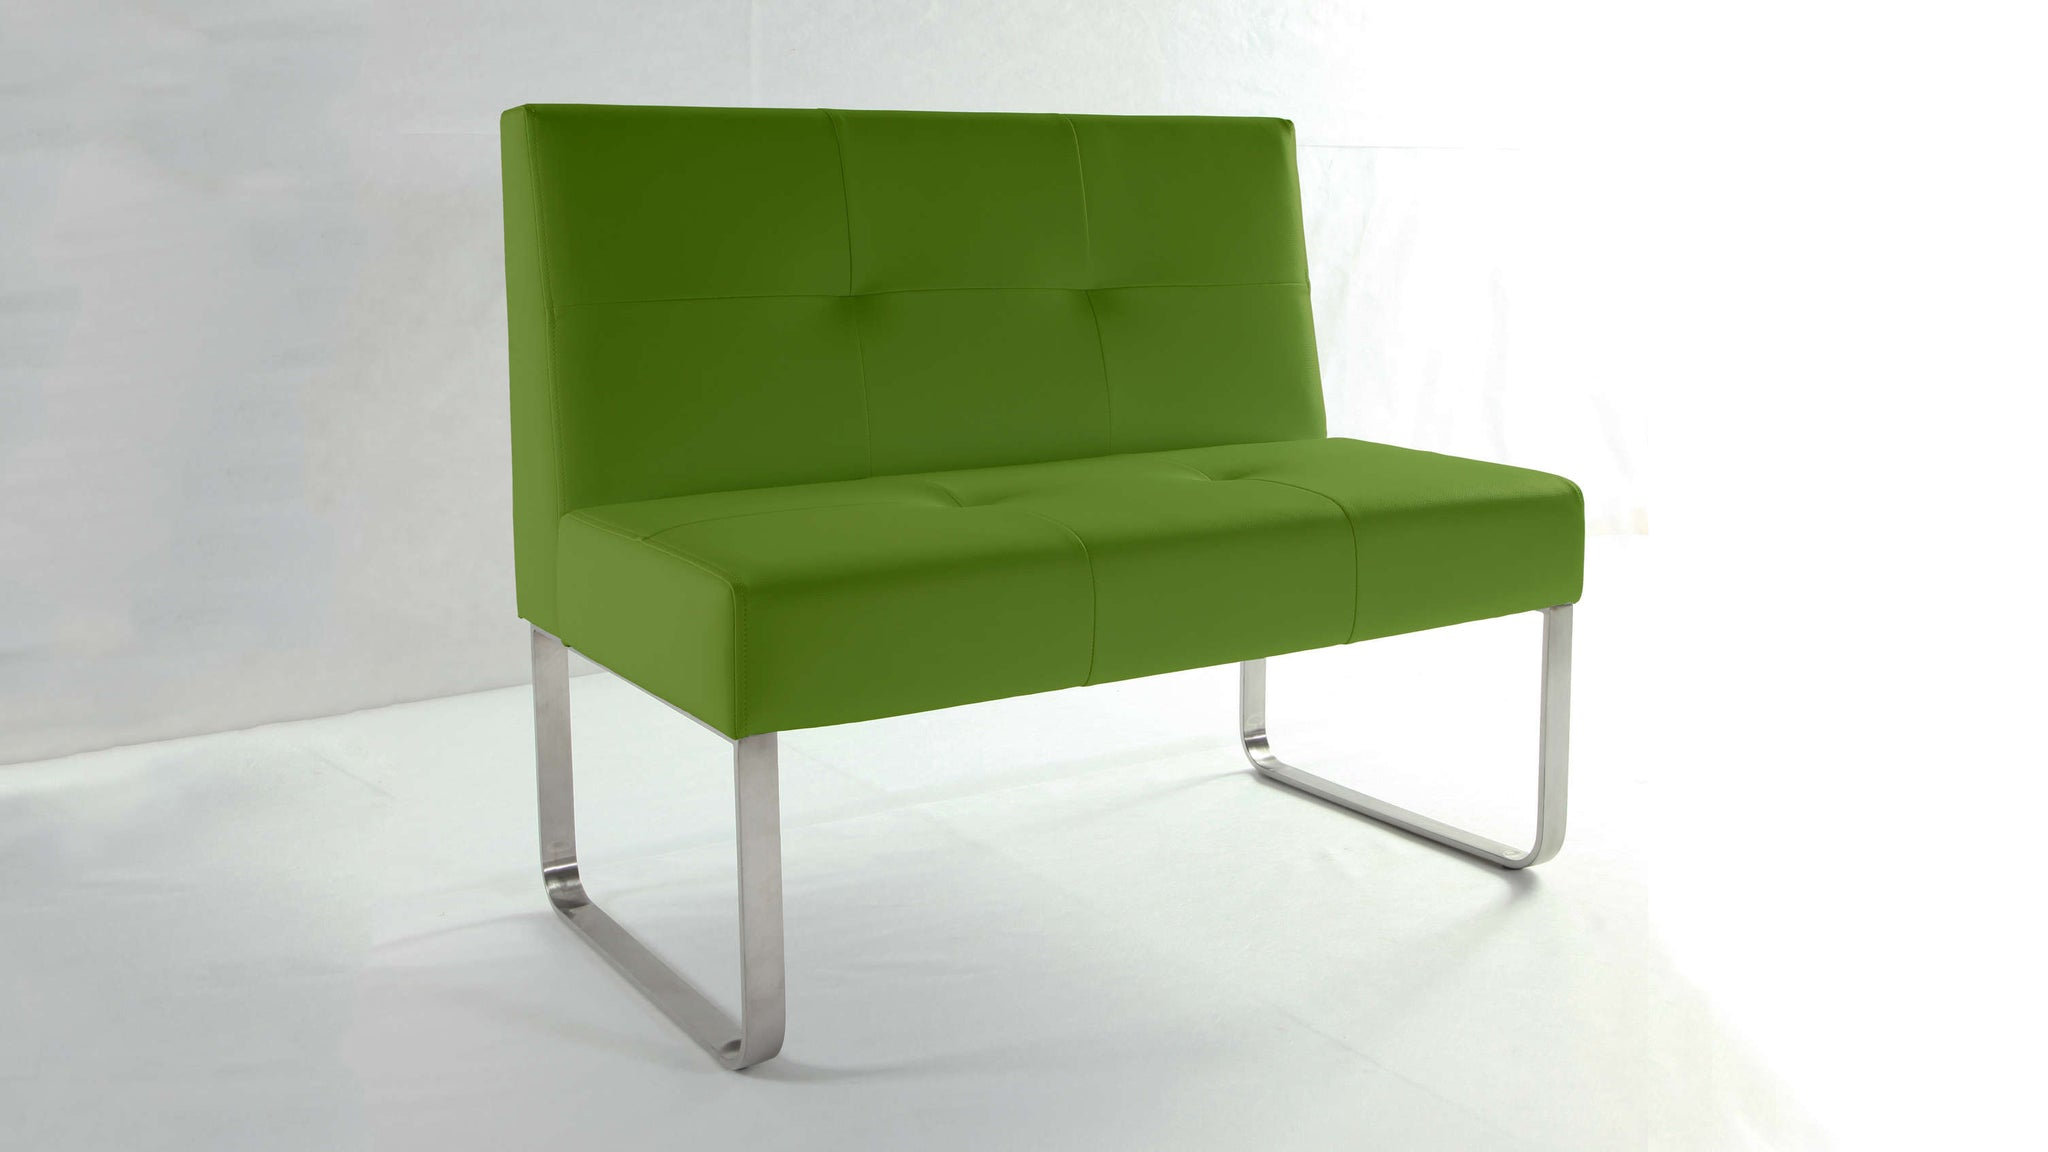 Contemporary Green and Chrome Dining Bench with Backrest